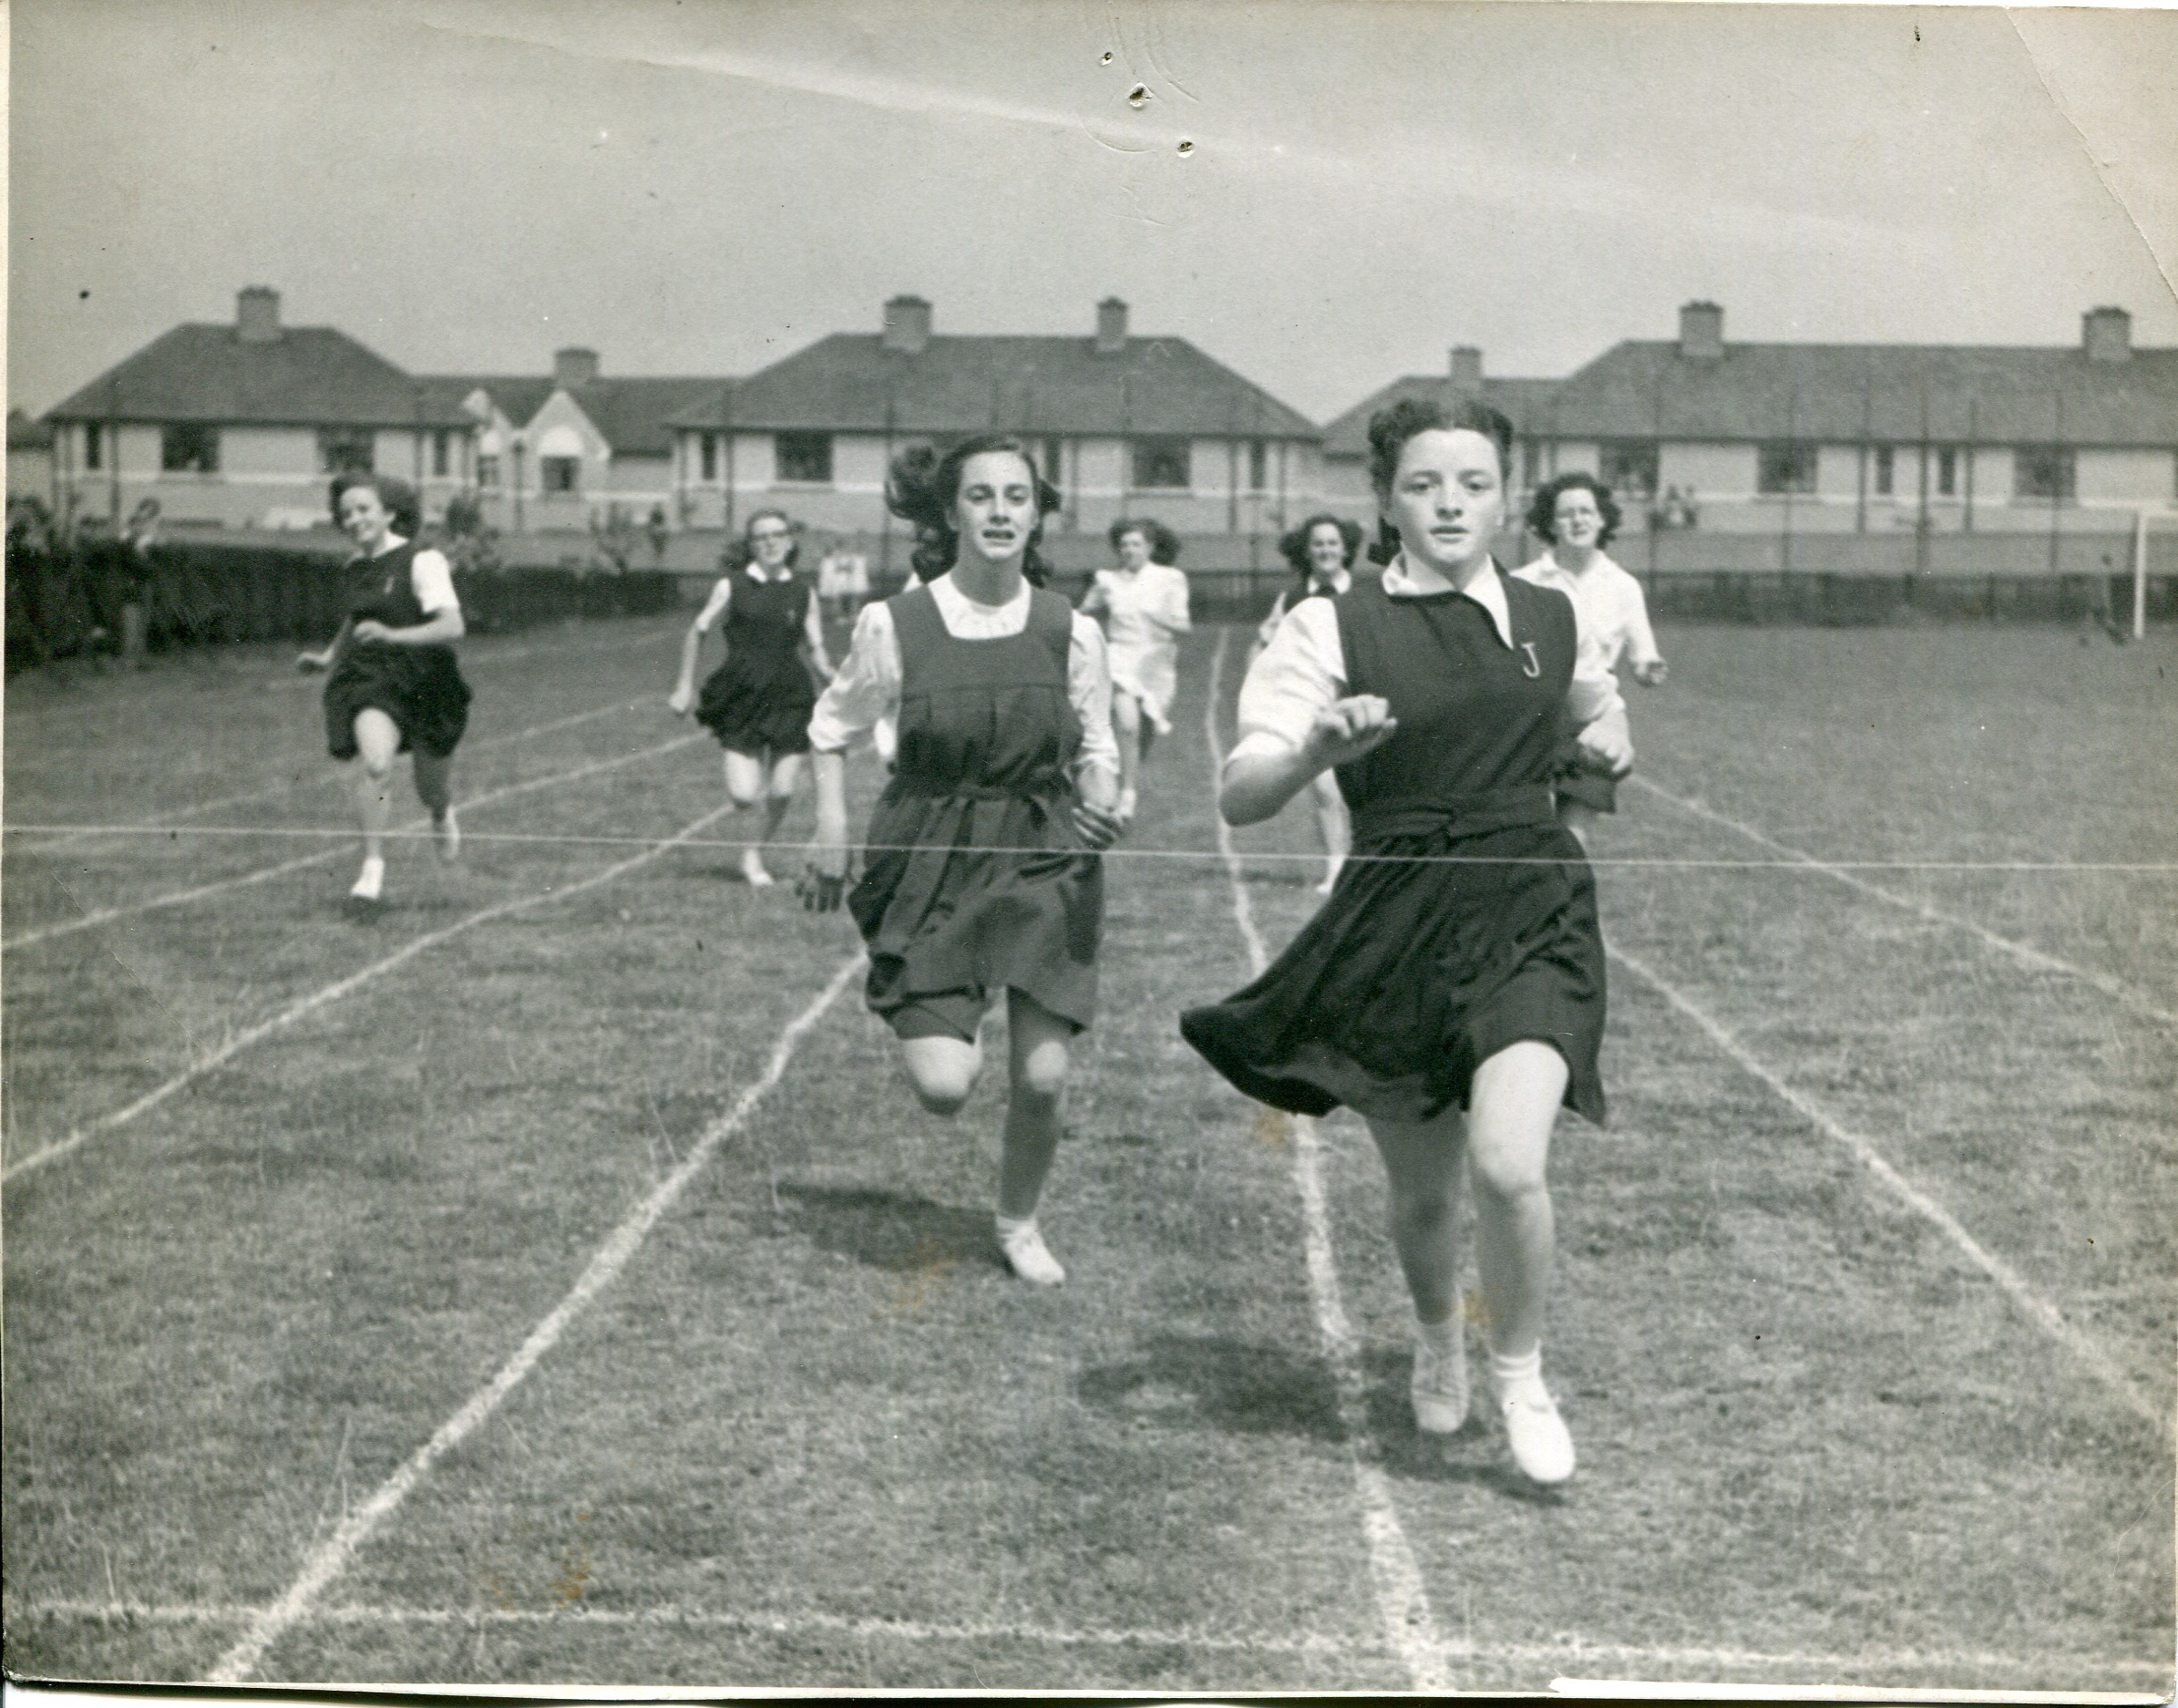 Outdoor girl's race featuring workers from the Jacob's Biscuit Factory